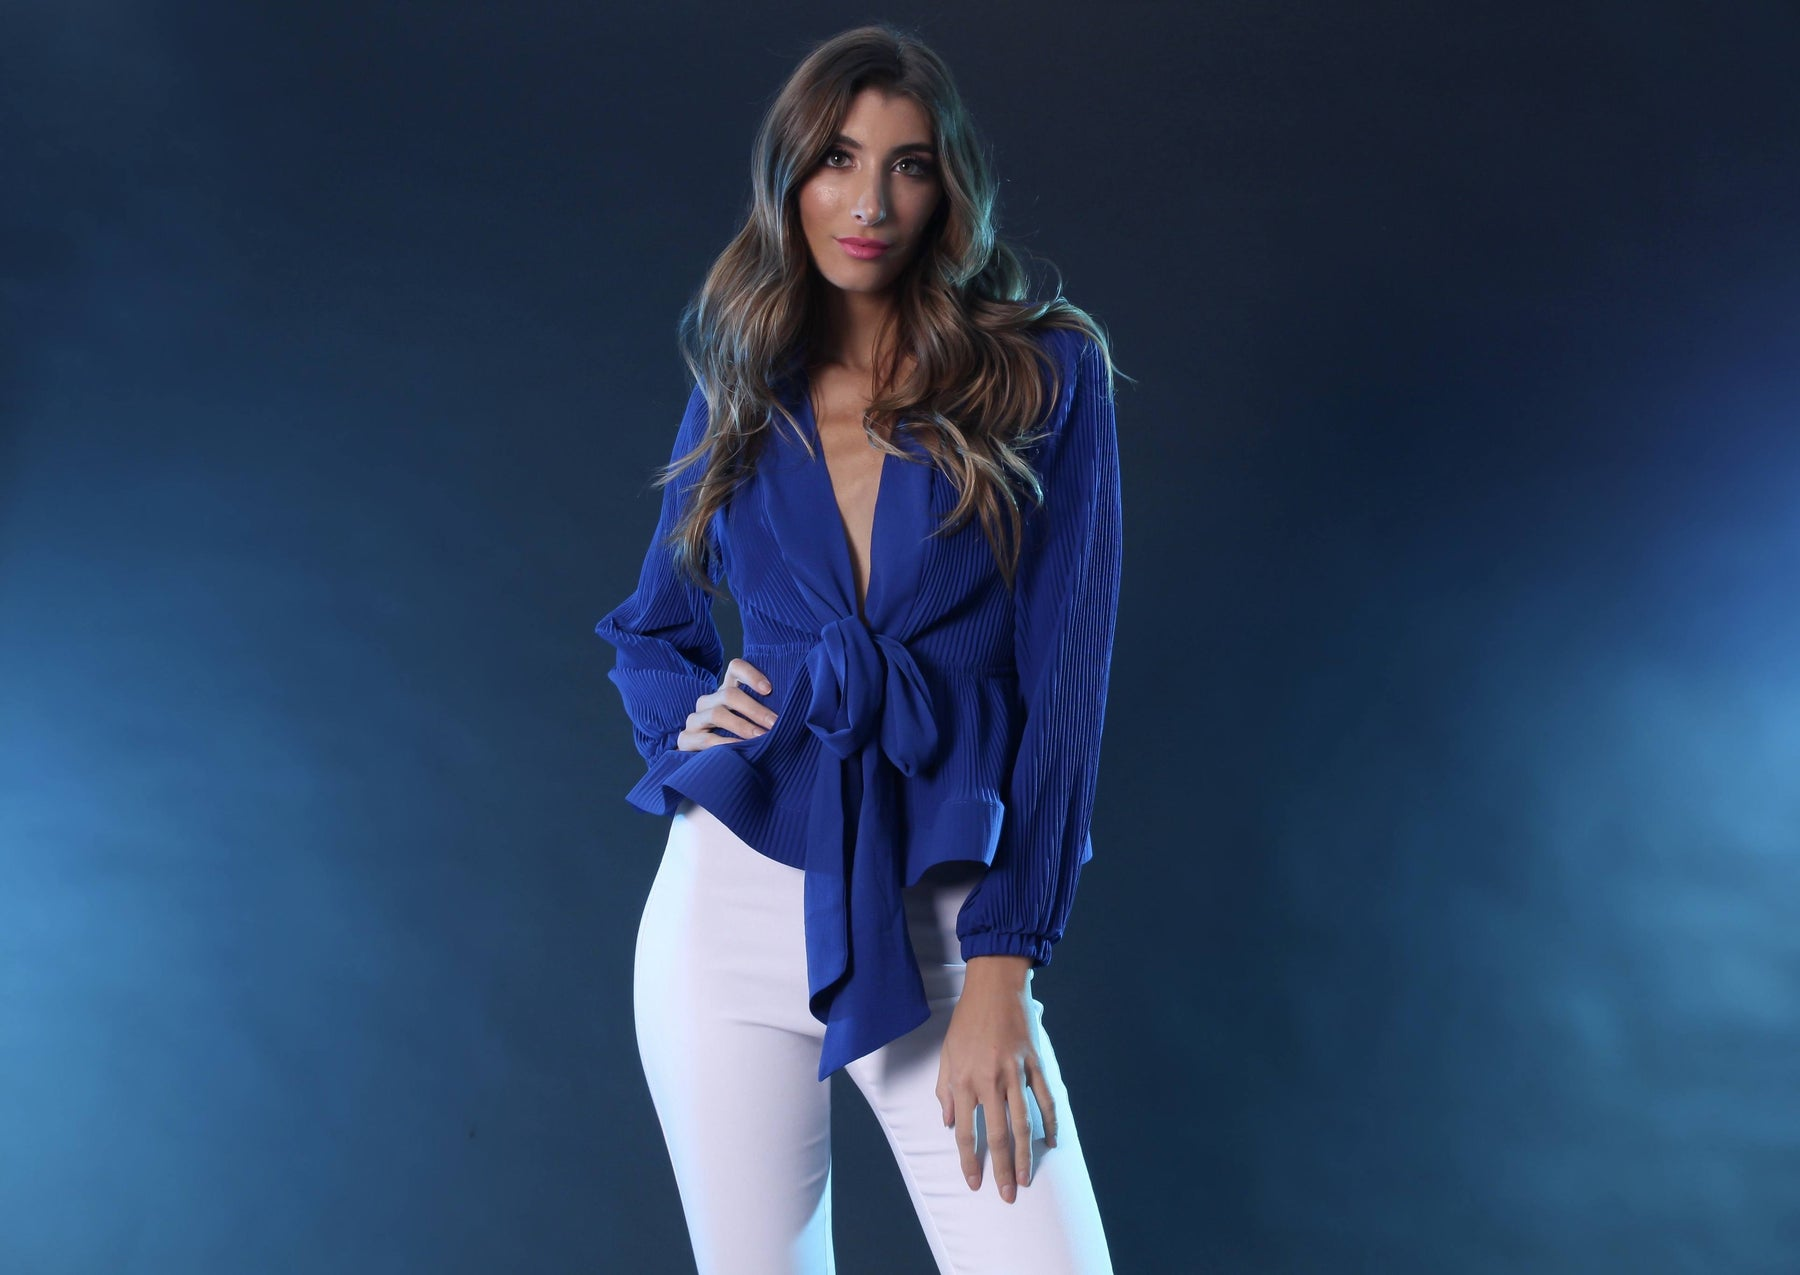 c15835d479 Mystique Boutique NYC Has Trendy And Affordable Fashion For Women